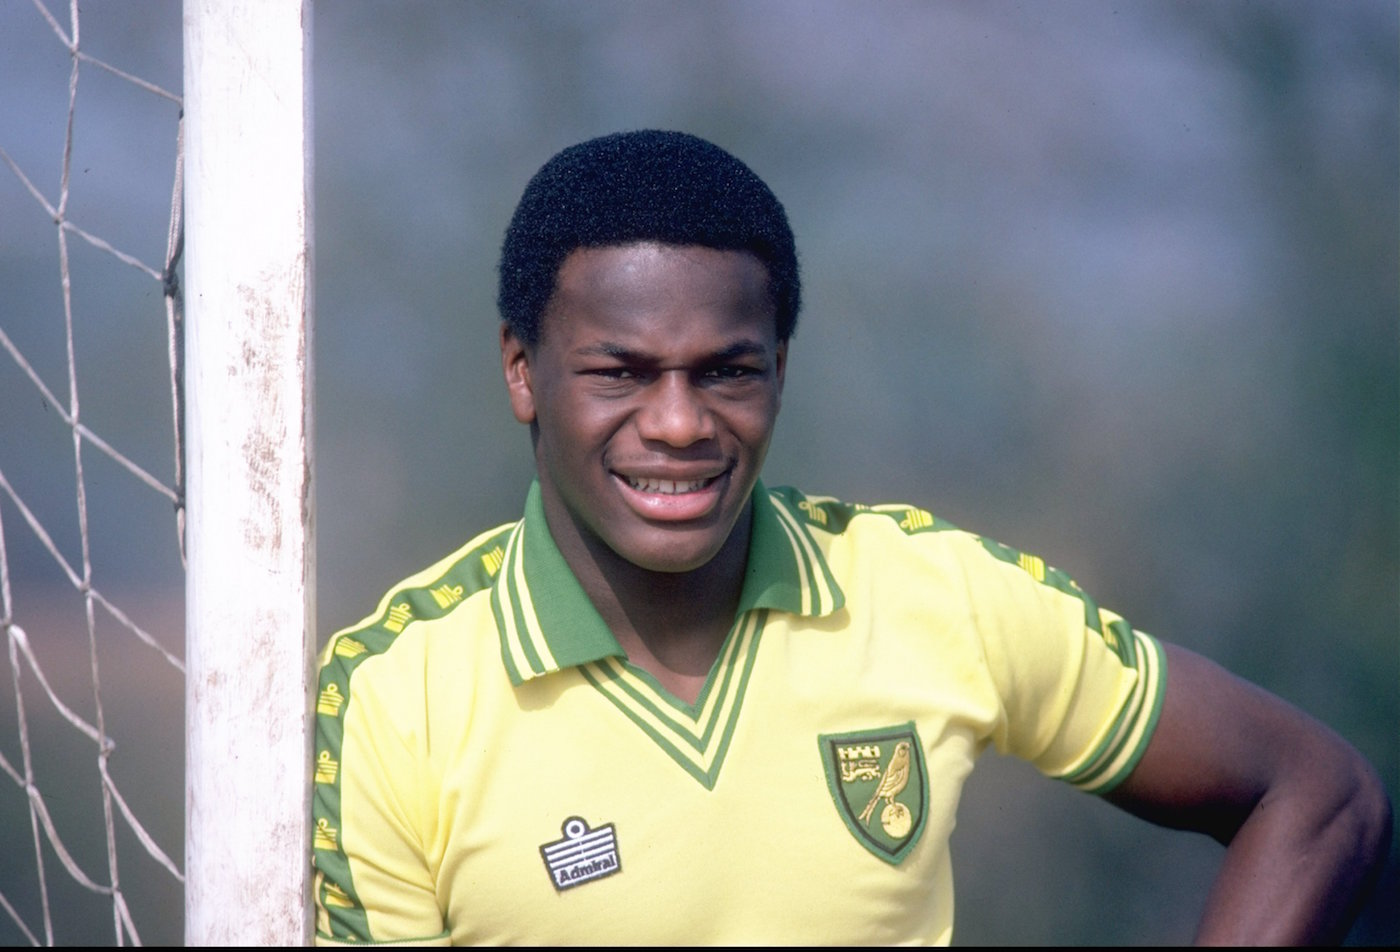 Justin Fashanu became the UK's first openly gay footballer